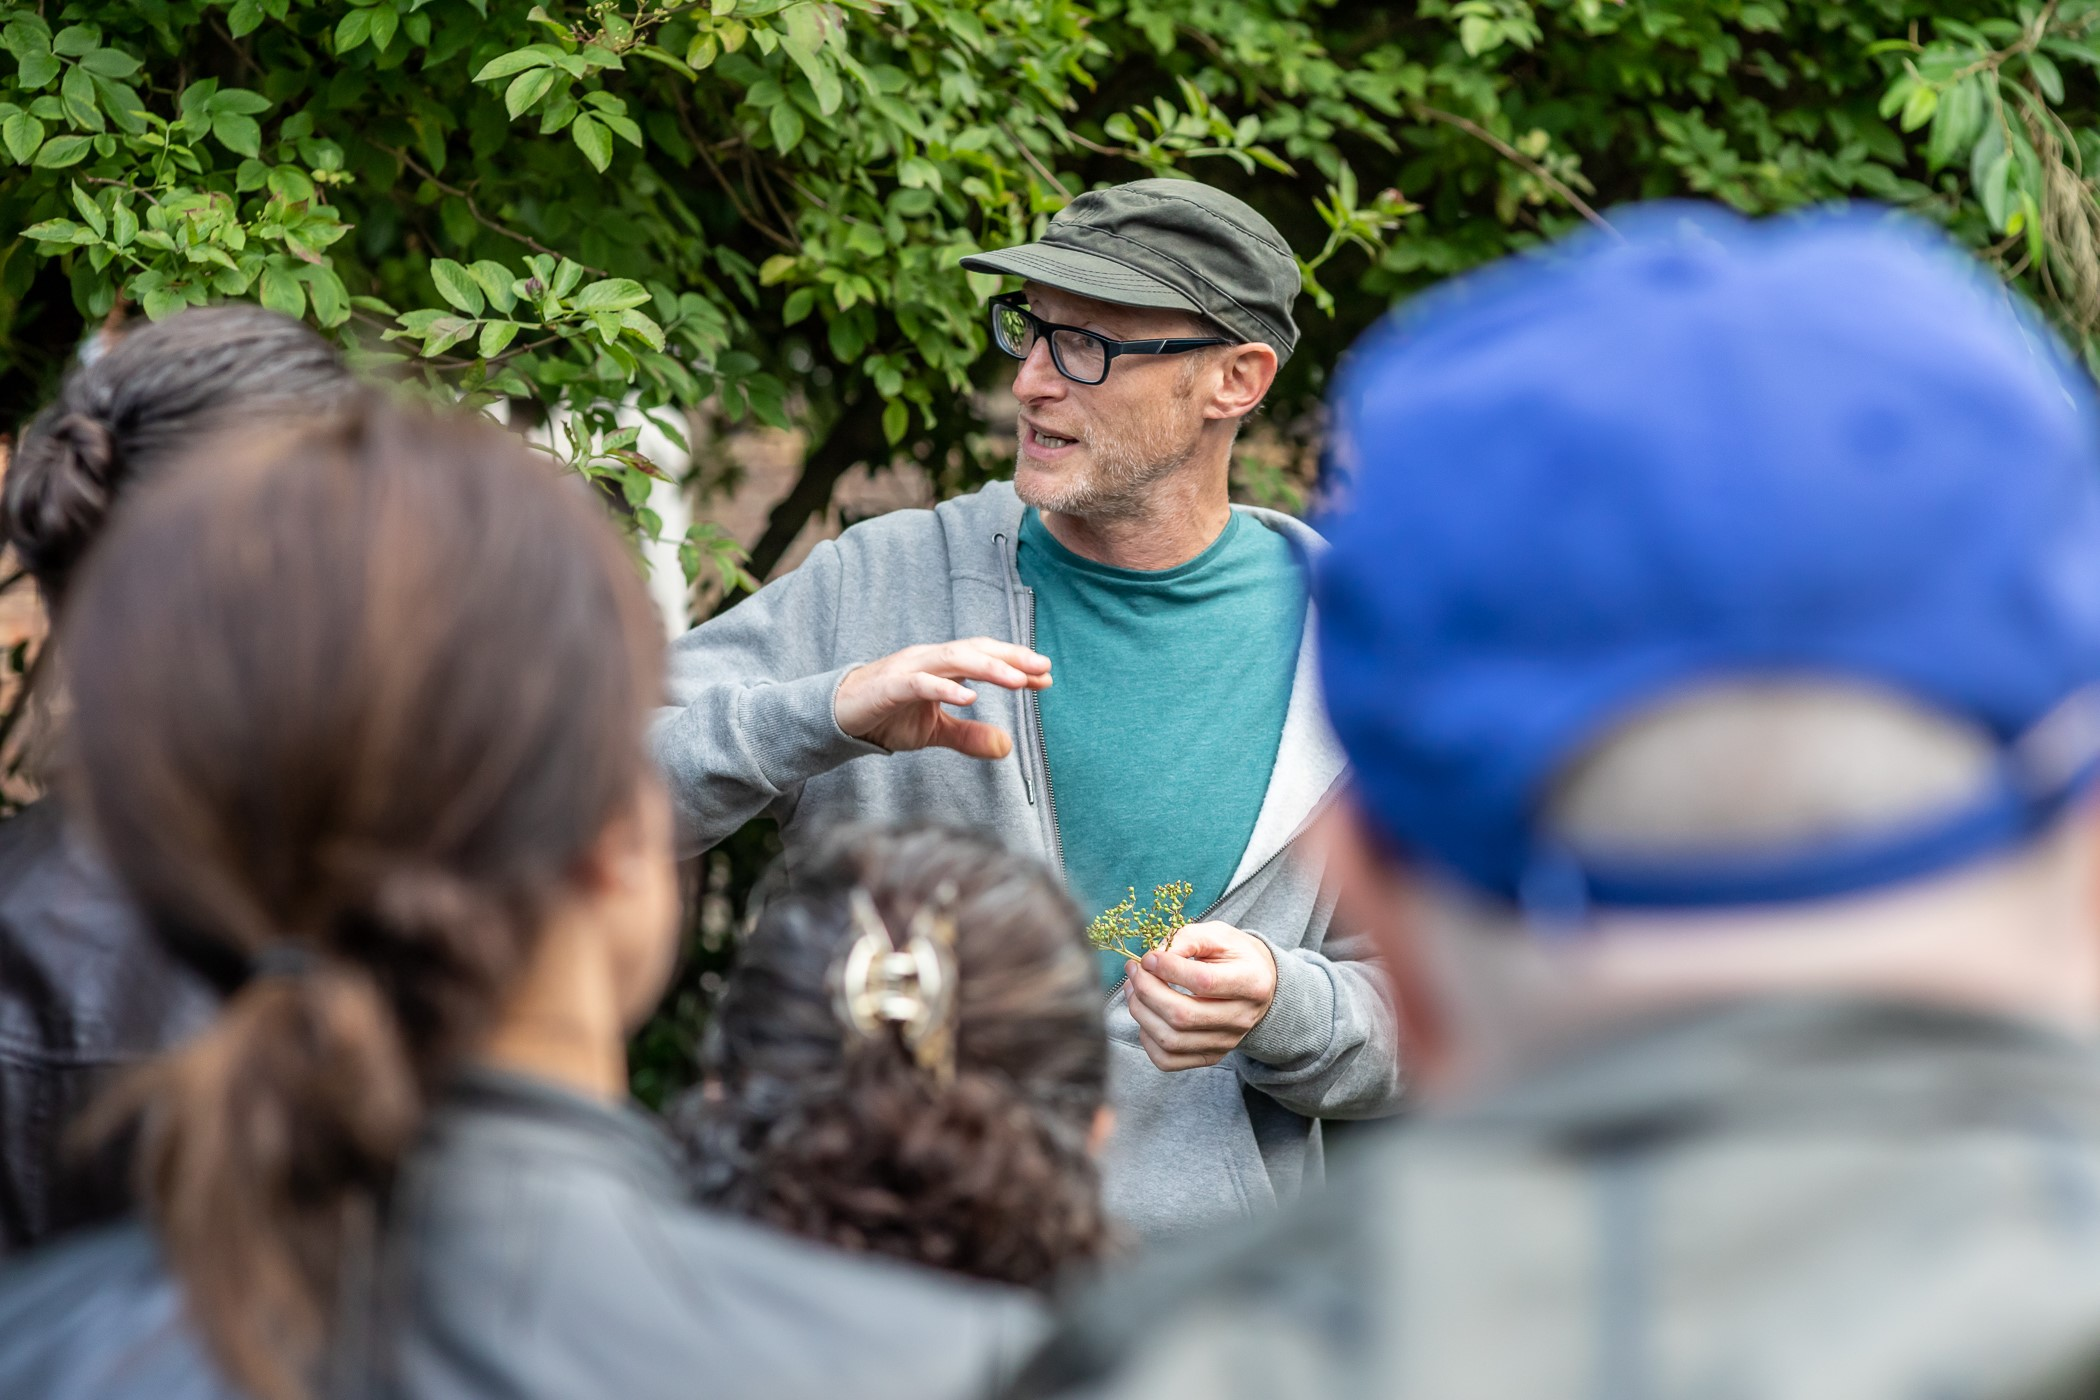 John Rensten leading a guided foraging tour